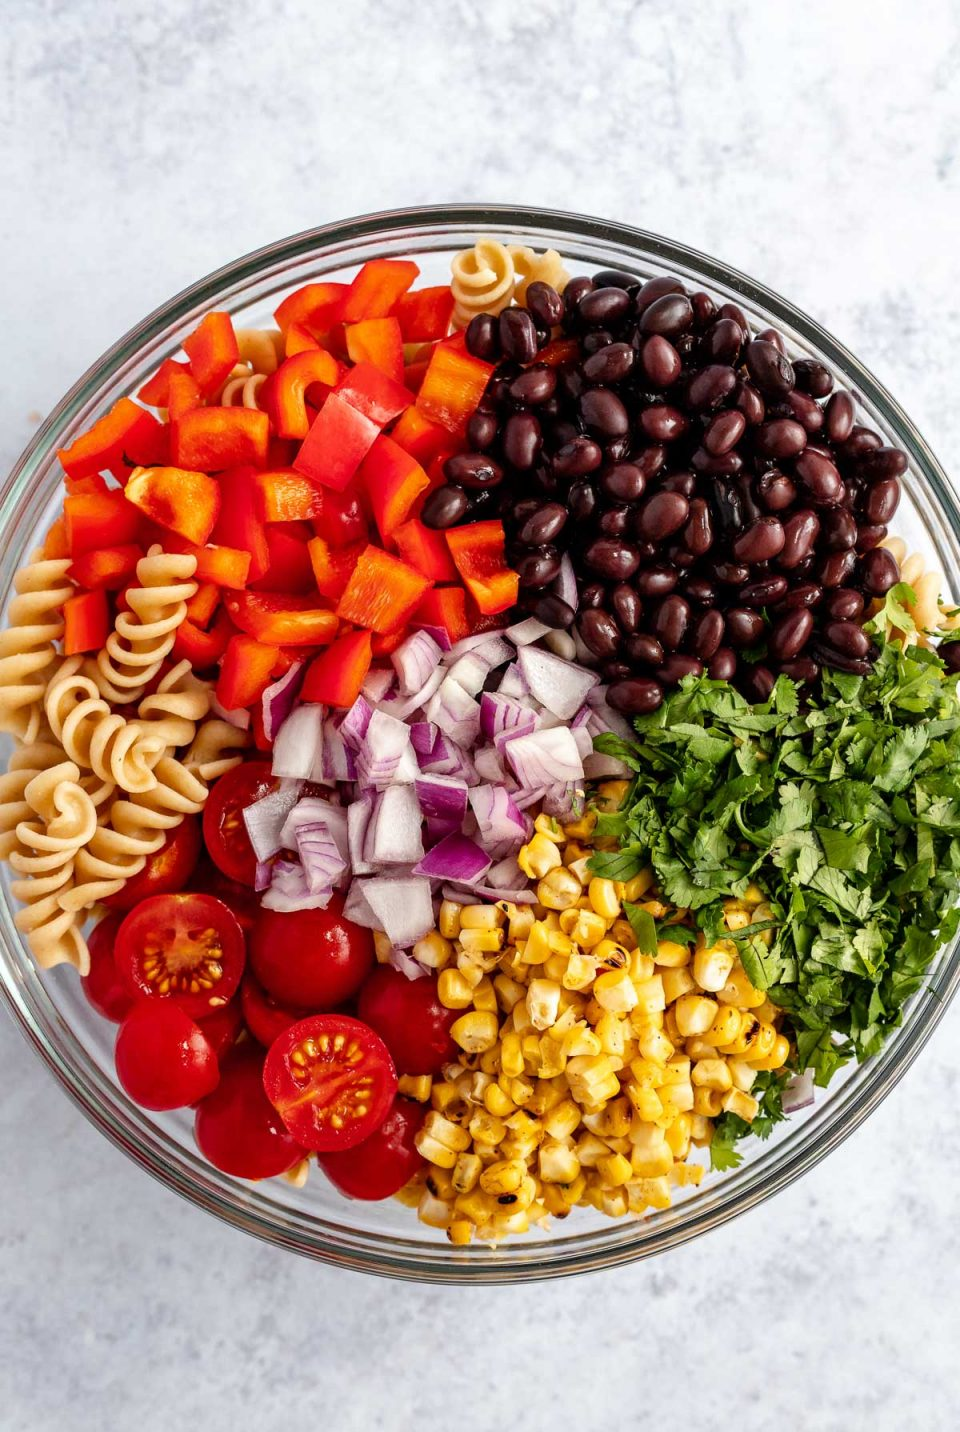 Vegan Southwest Pasta Salad ingredients arranged in a large, glass mixing bowl: spiral pasta, chopped red bell pepper, black beans, diced red onion, fire-roasted corn, halved cherry tomatoes, & freshly chopped cilantro. The bowl sits atop a light blue surface.